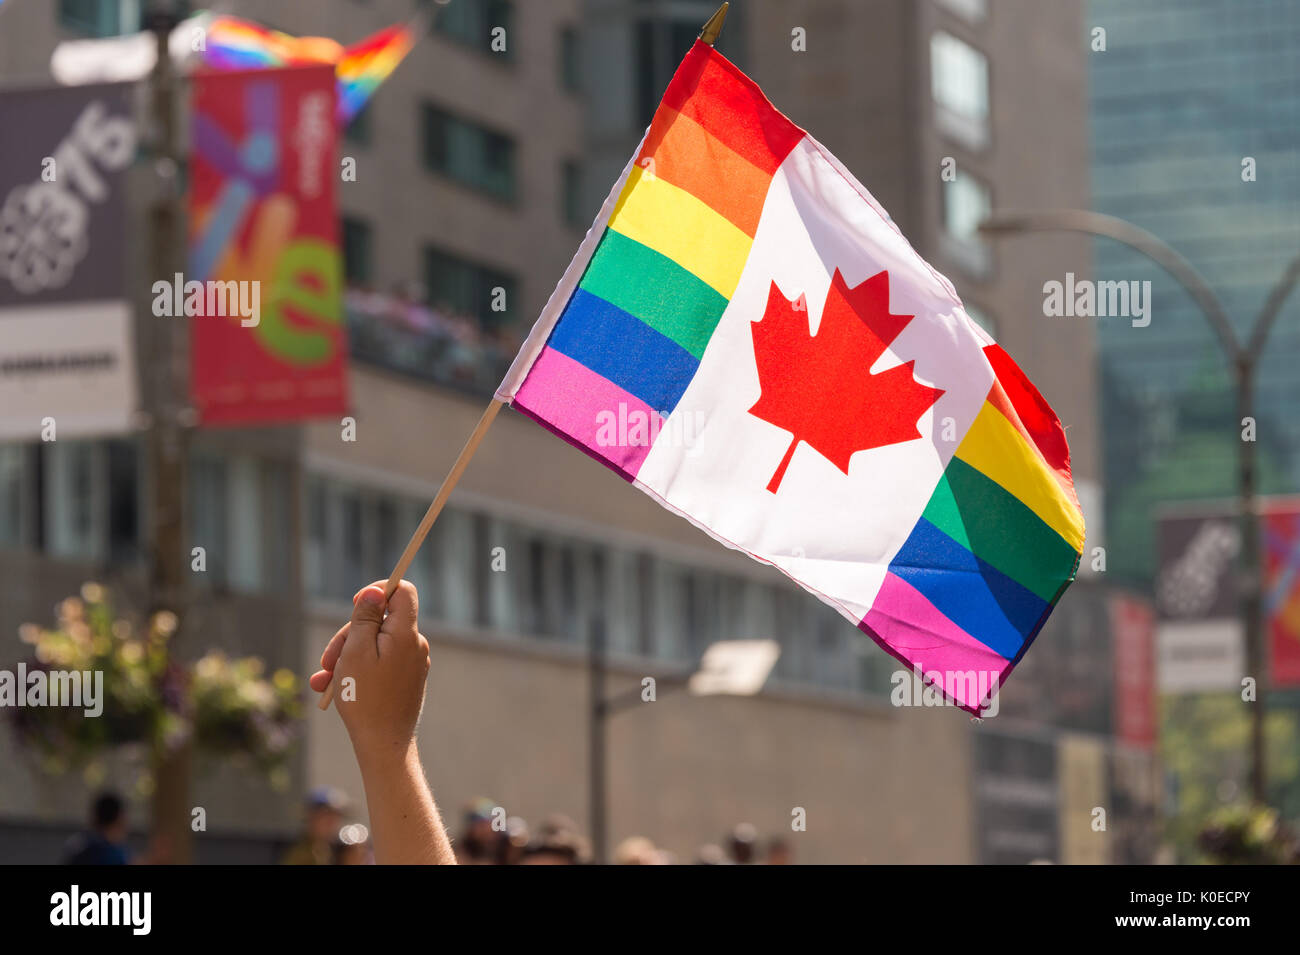 Montreal, CANADA - 20 August 2017: Canadian Gay rainbow flag at Montreal gay pride parade - Stock Image